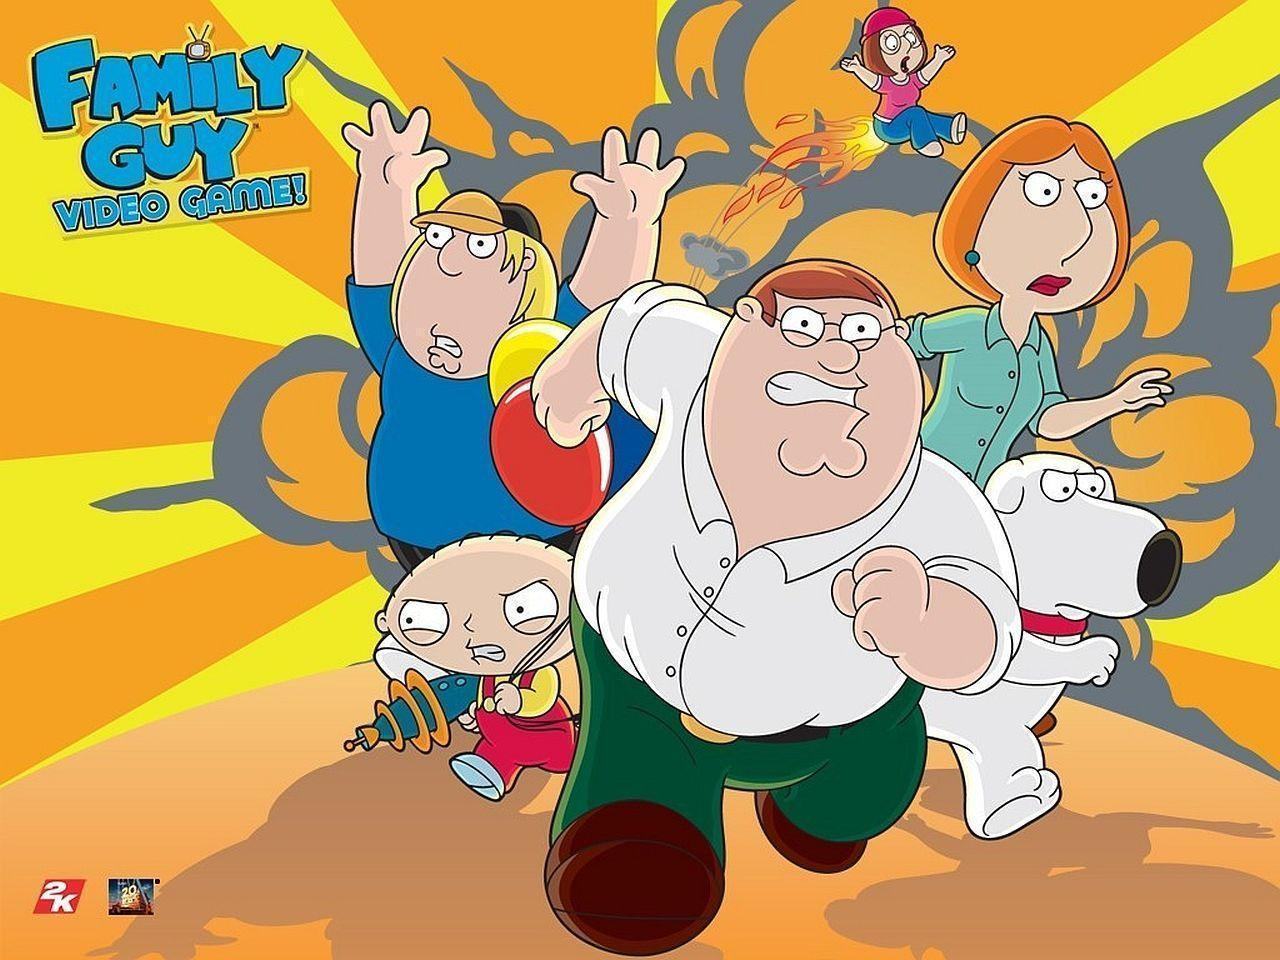 Family Guy Wallpapers For Computer - Wallpaper Cave